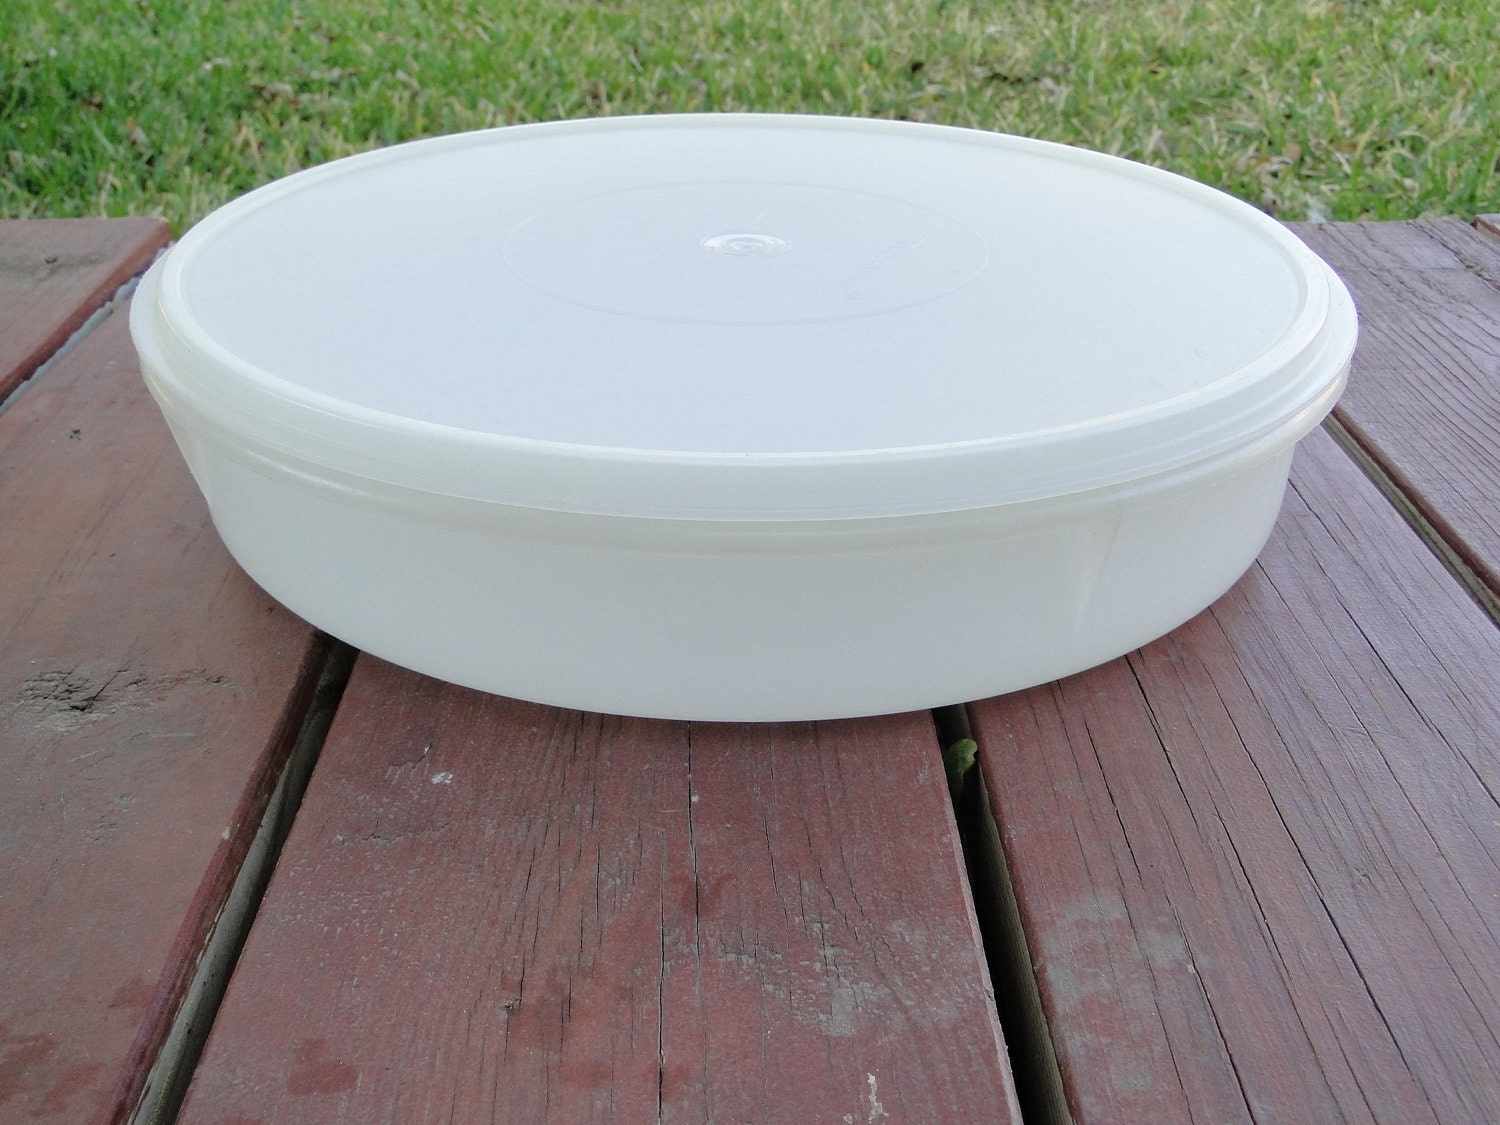 Tupperware Large Round Storage Container Mold No 242 6